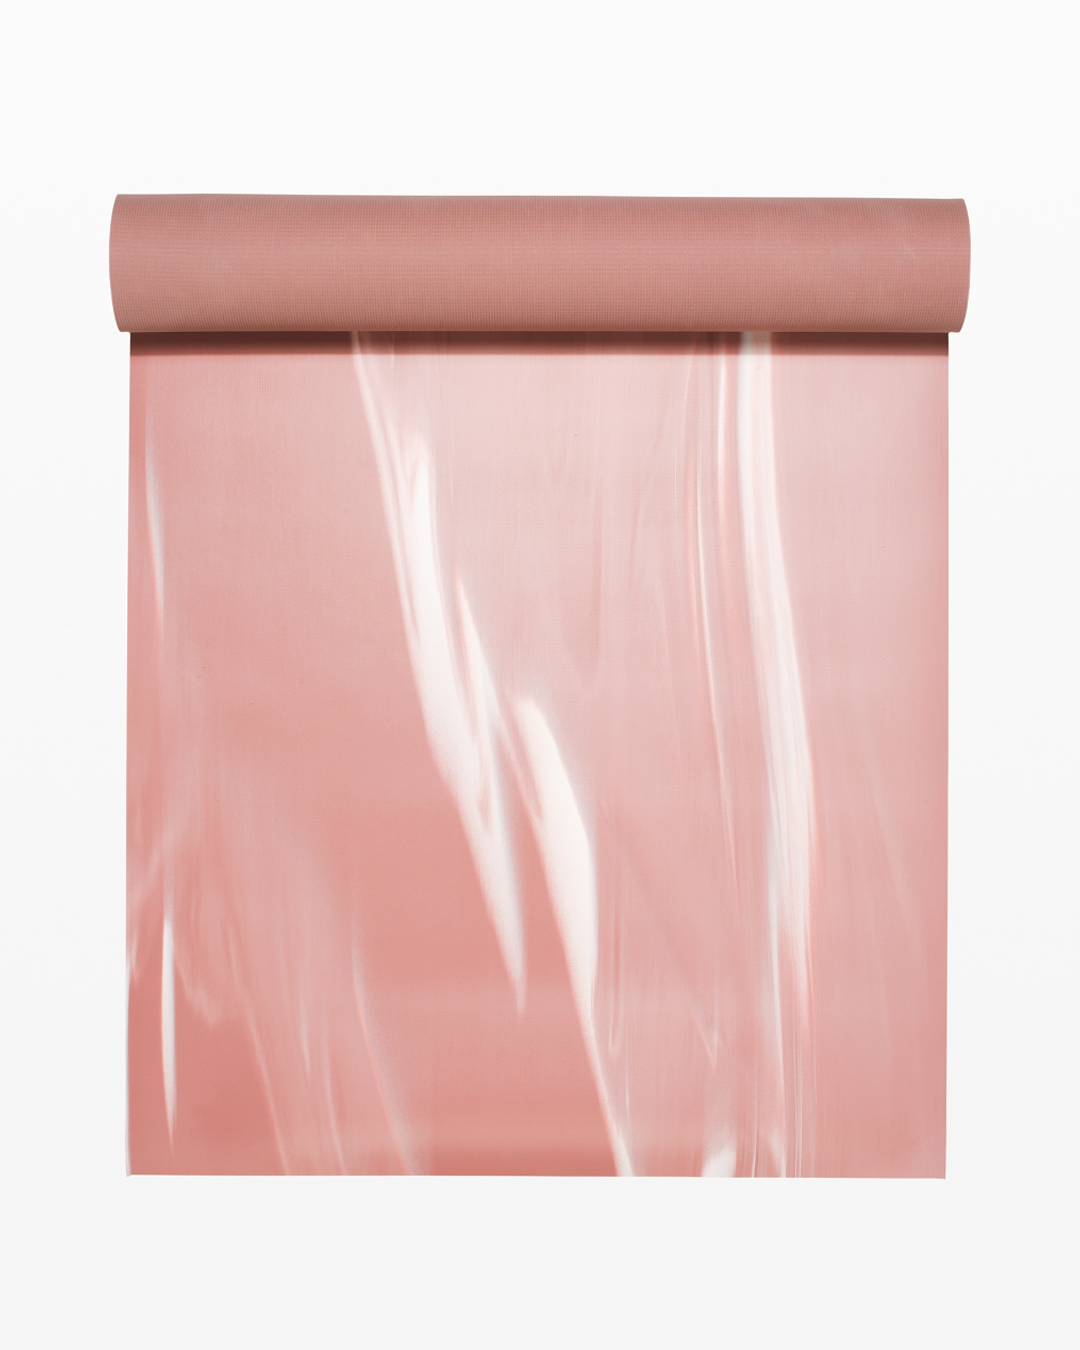 A pink yoga mat, half rolled out showing white paint stroke details